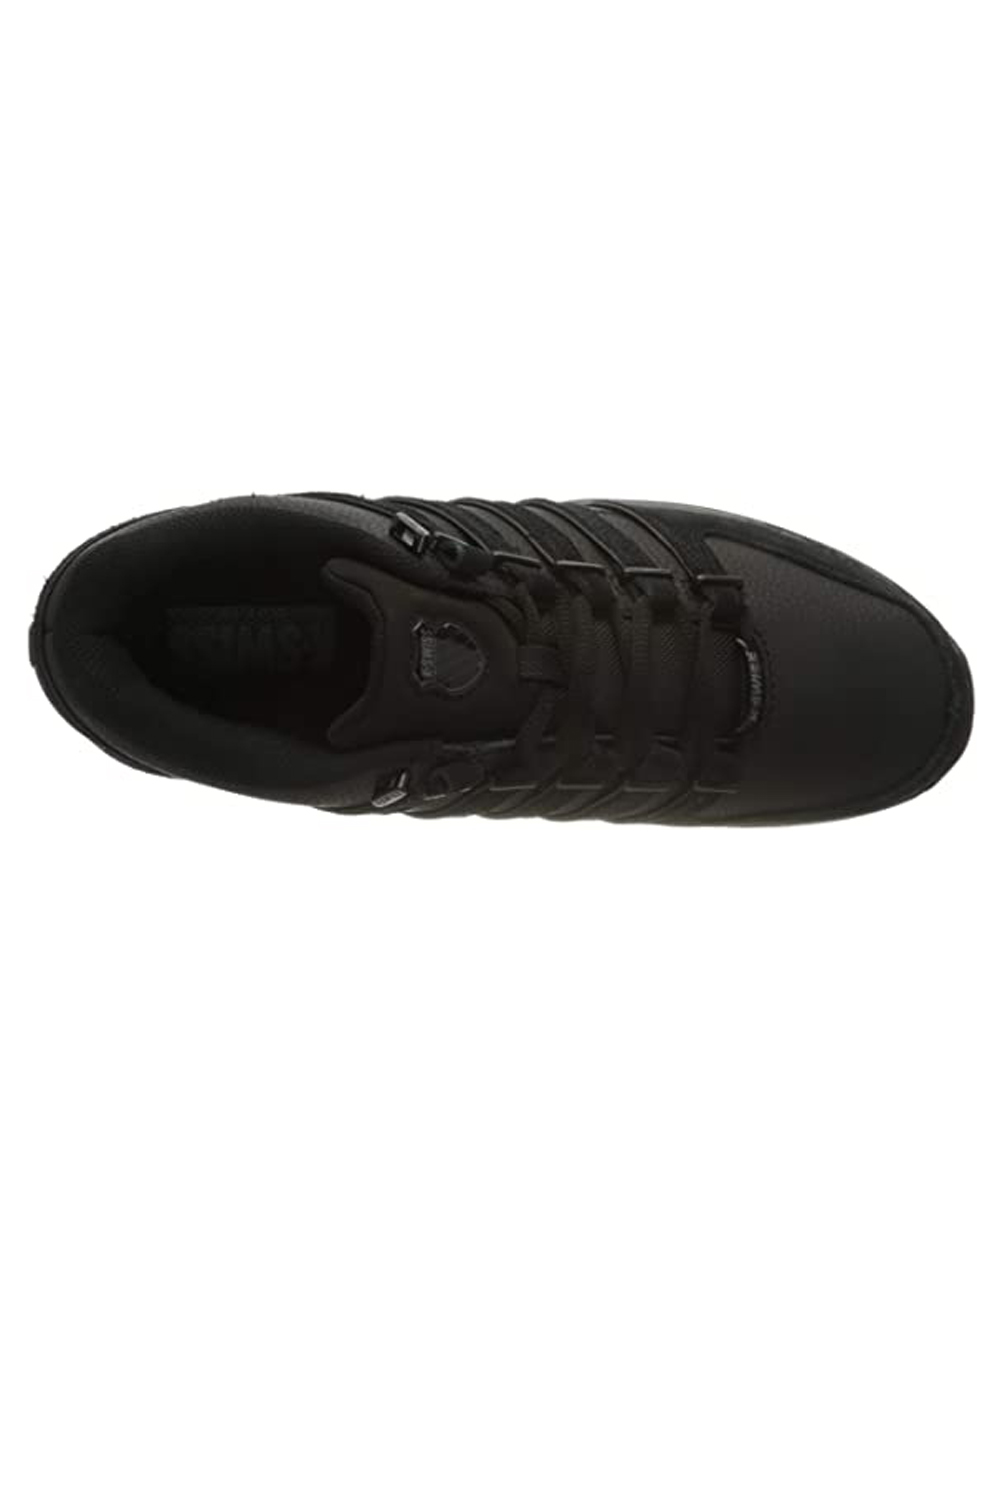 thumbnail 7 - K-Swiss Mens Comfortable Low Top Classic Leather Suede Rinzler Trainers Sneakers